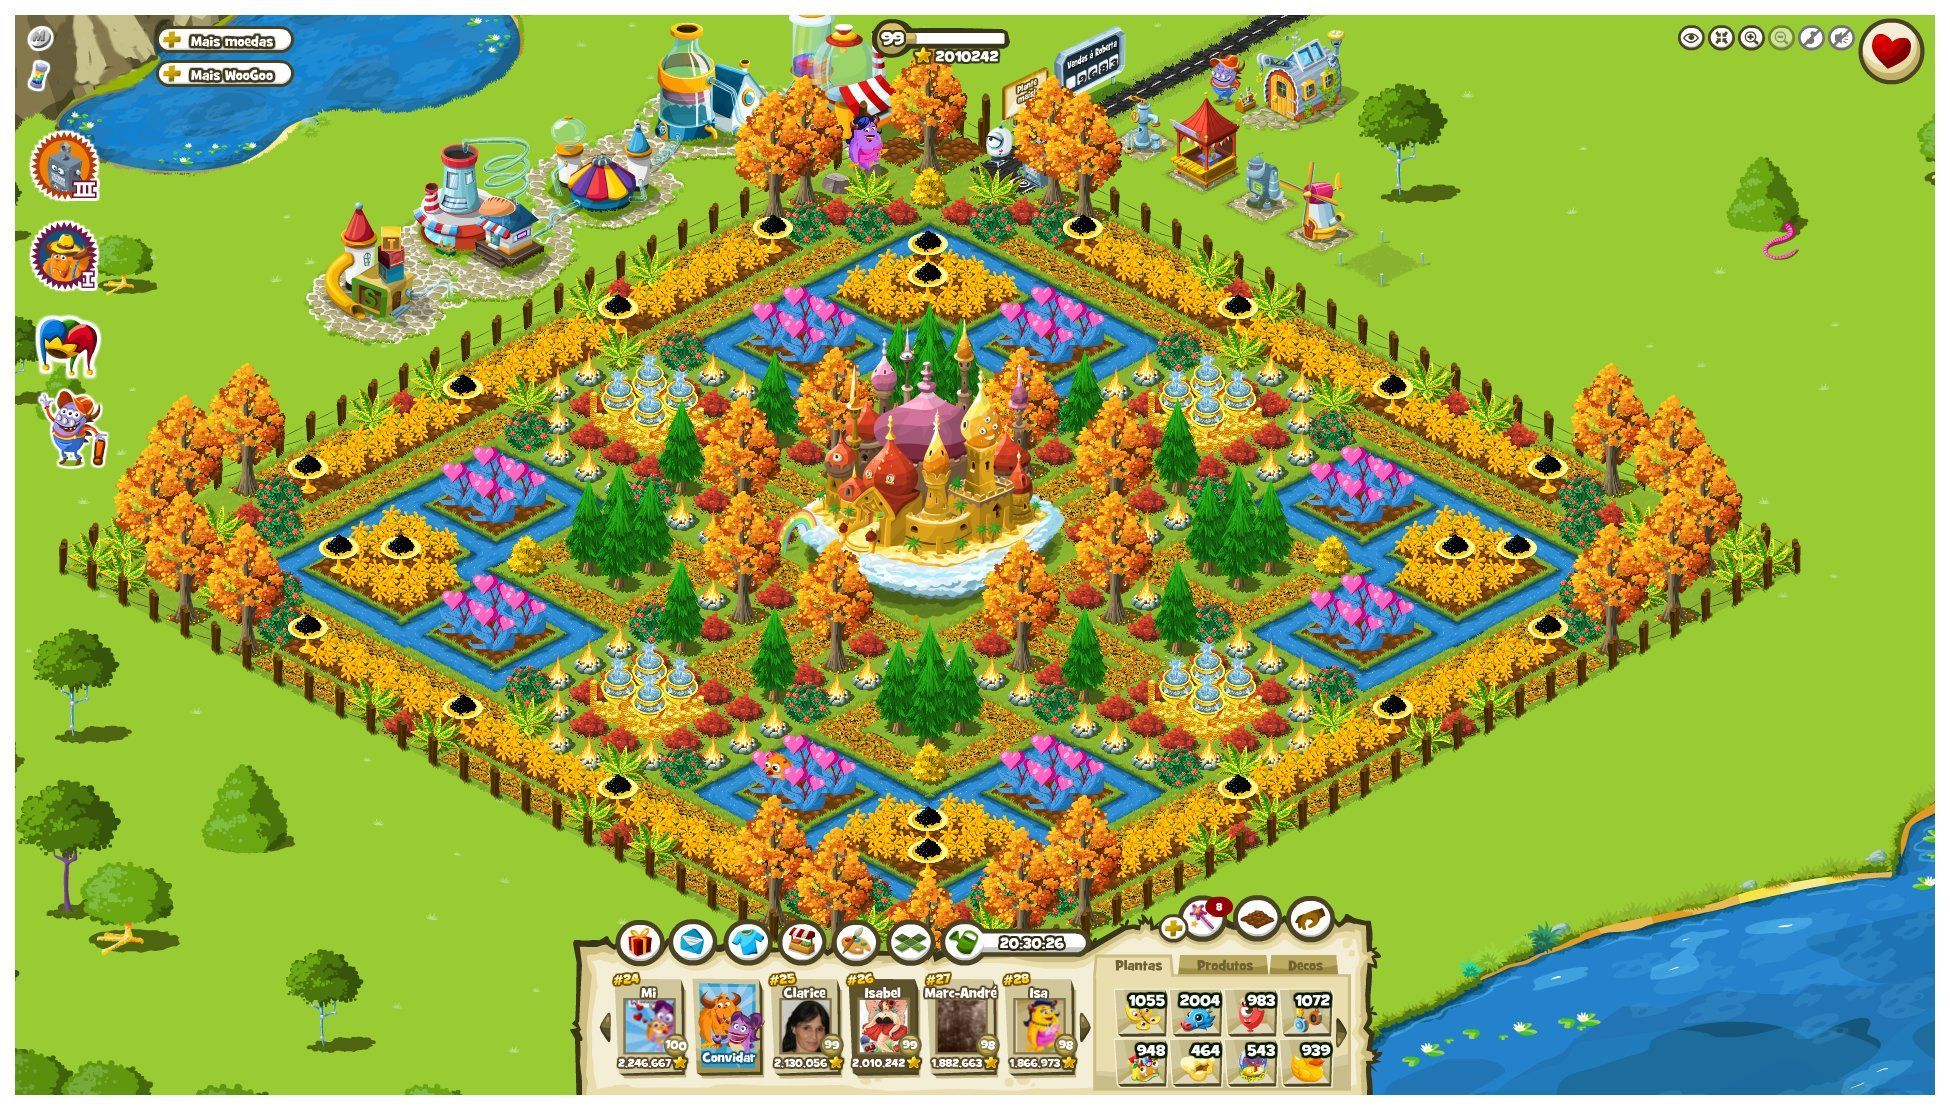 Monster World Garten Monster World Garten Zuhause Image Idee